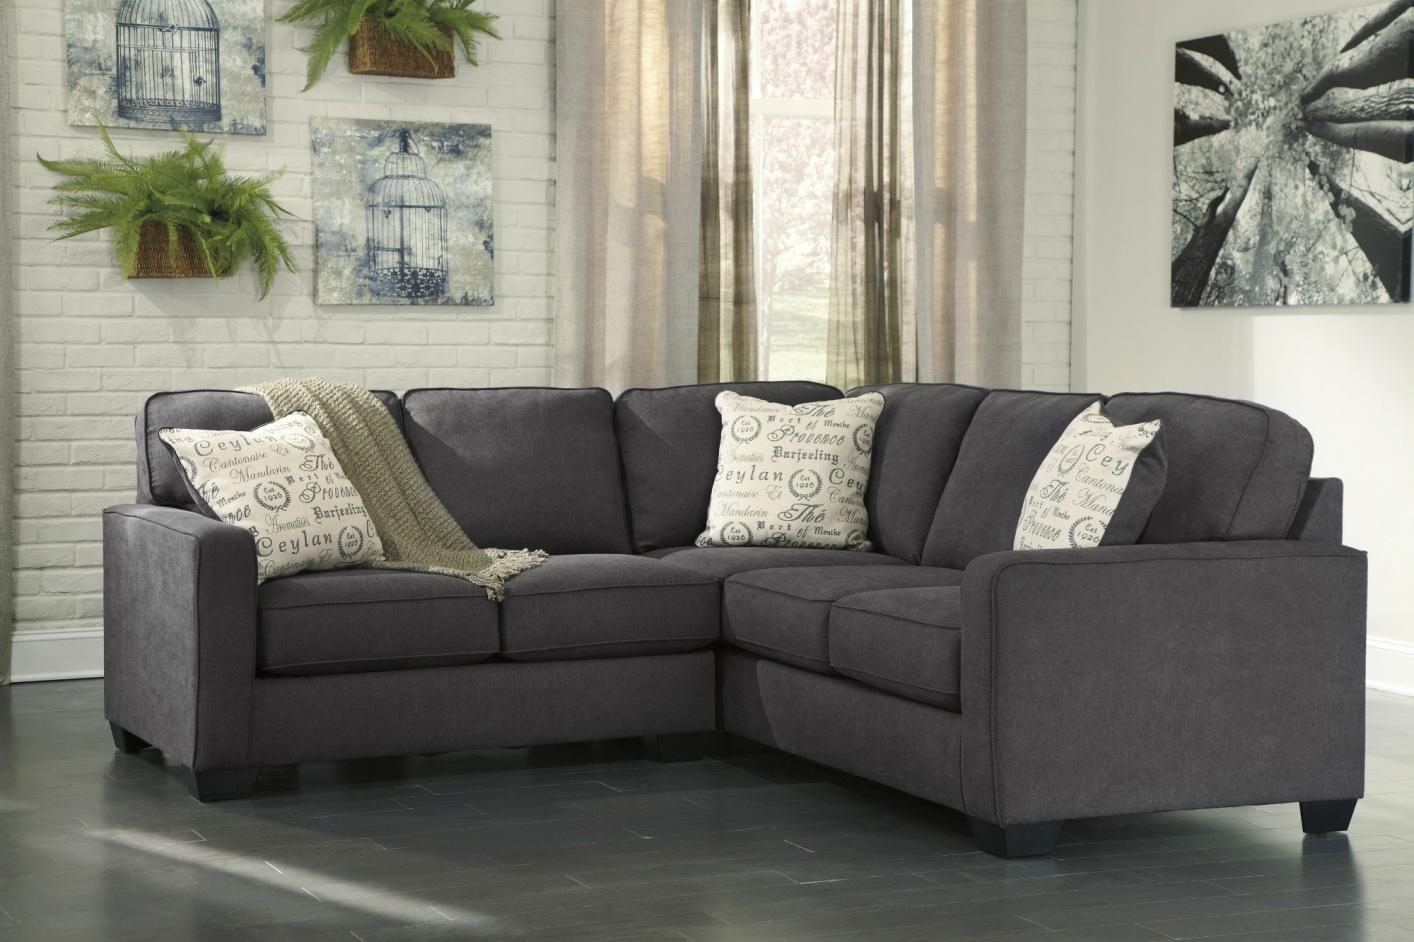 Alenya Grey Fabric Sectional Sofa : sectional couches los angeles - Sectionals, Sofas & Couches